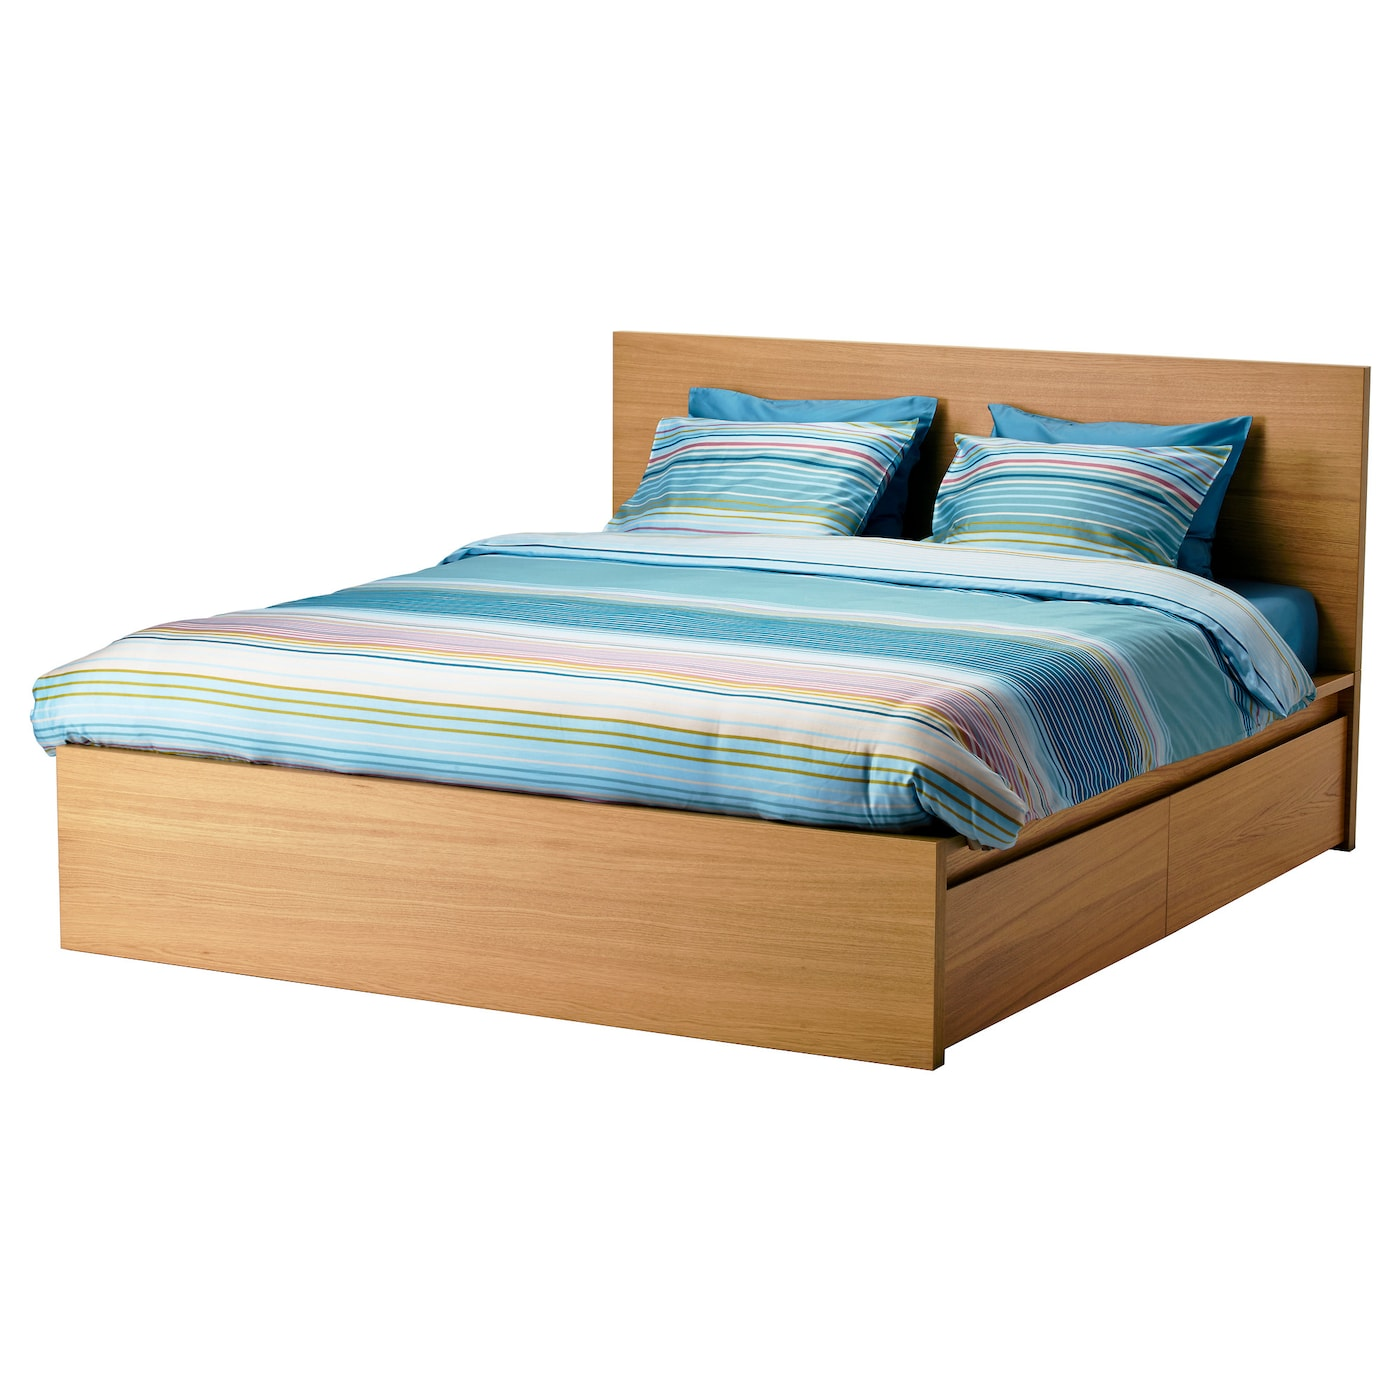 IKEA MALM bed frame, high, w 4 storage boxes Real wood veneer will make this bed age gracefully.